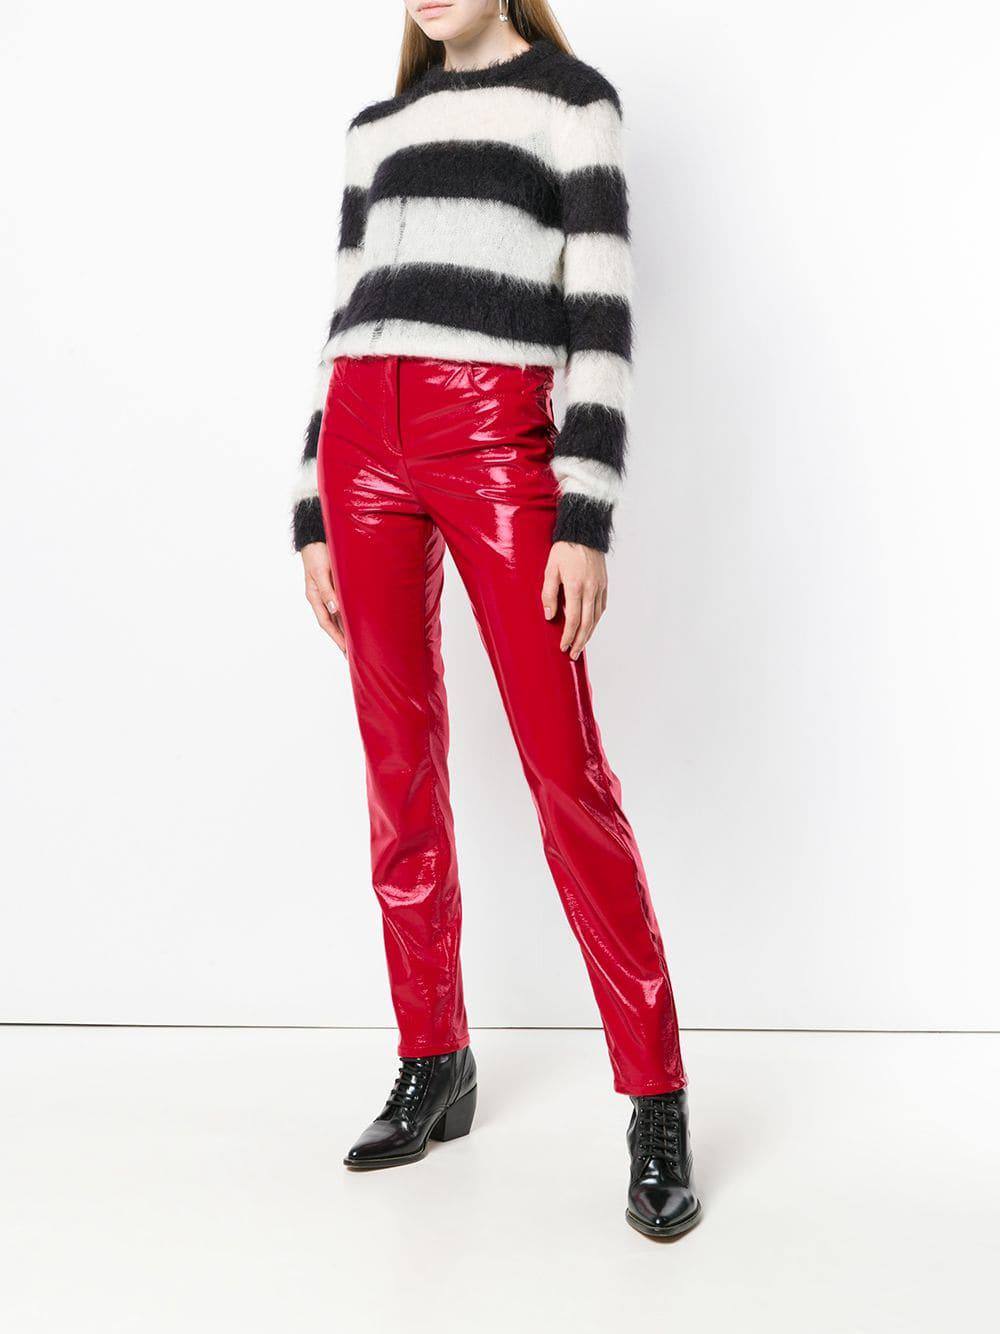 Fit Leather Slim Ferretti Trousers Lyst Faux Alberta In Red LzVqMpGjSU